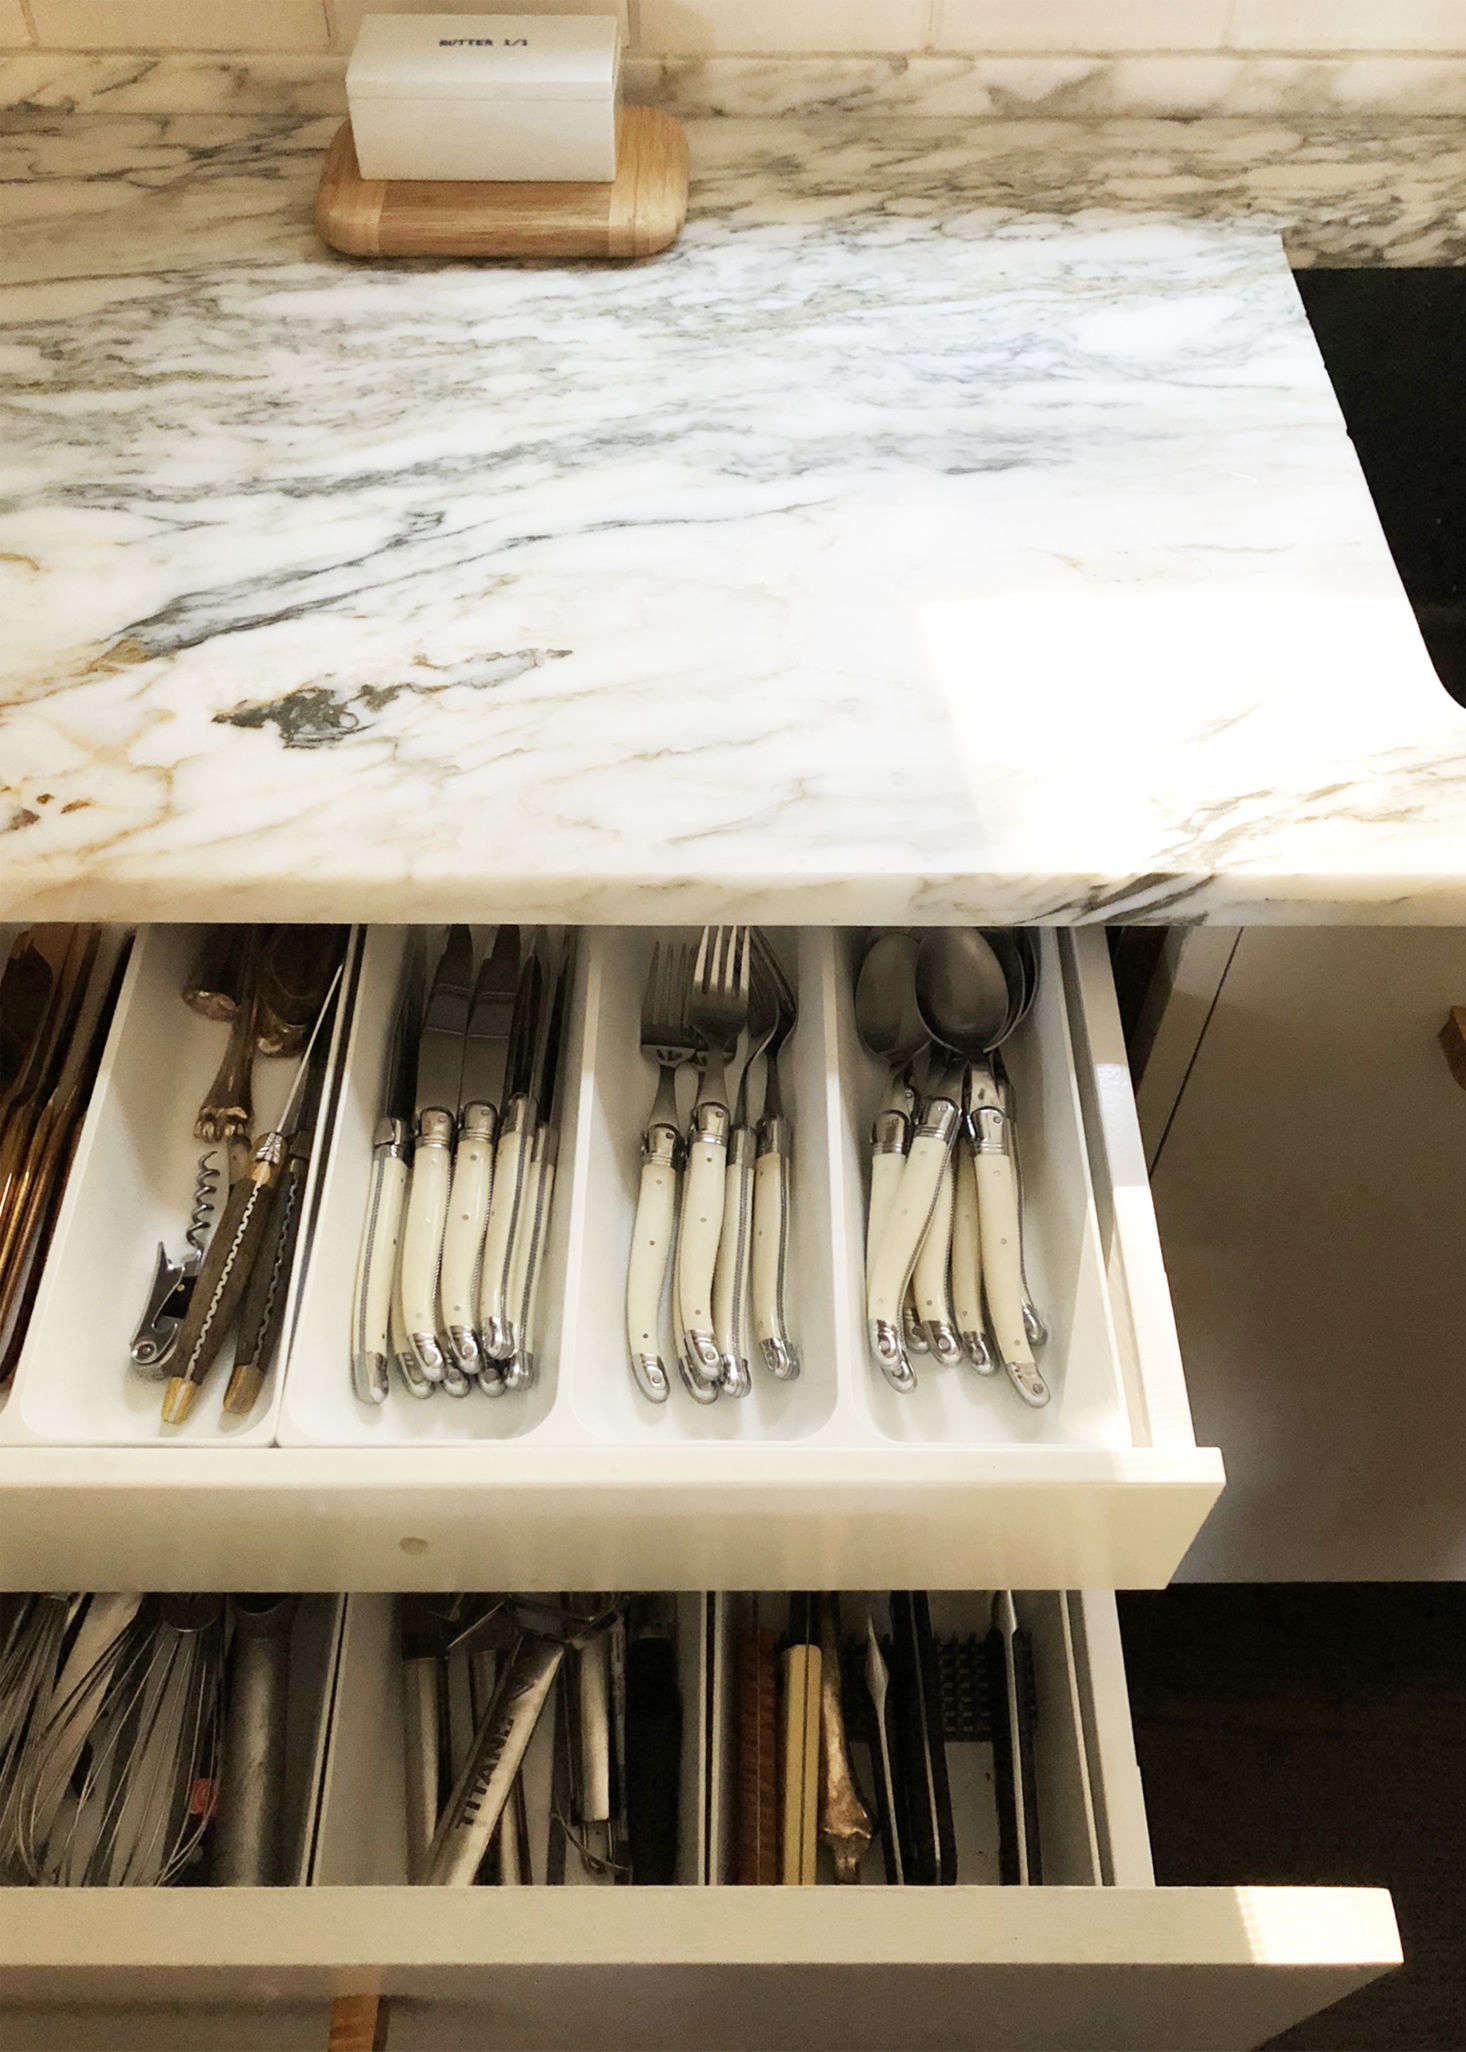 The most-used drawers: &#8